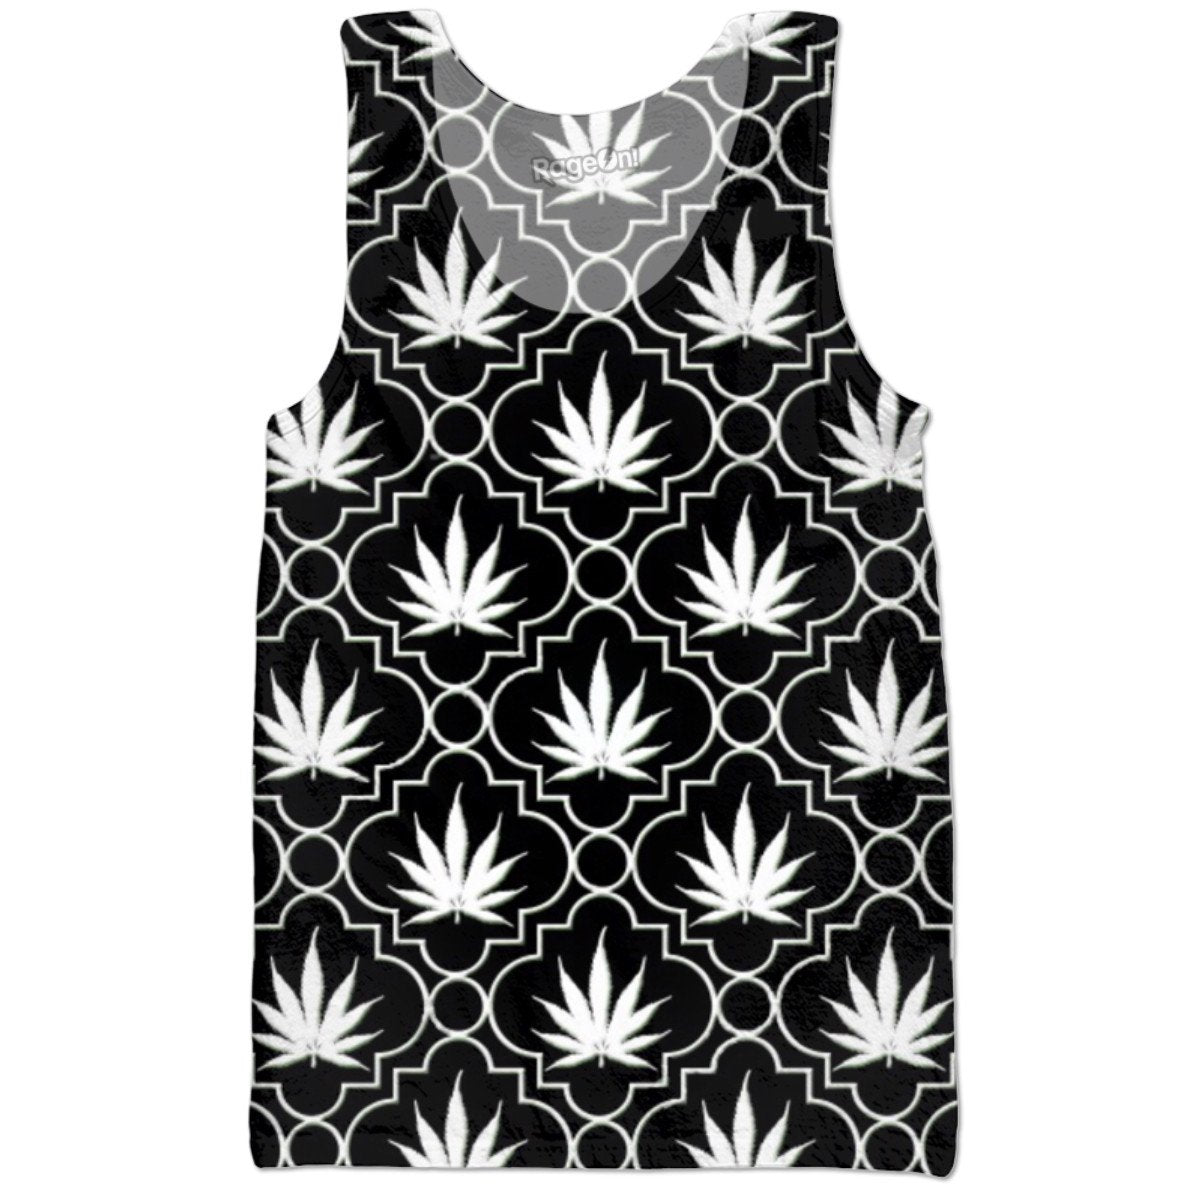 Black And White Chronic Tank Top - TShirtsRUS.co